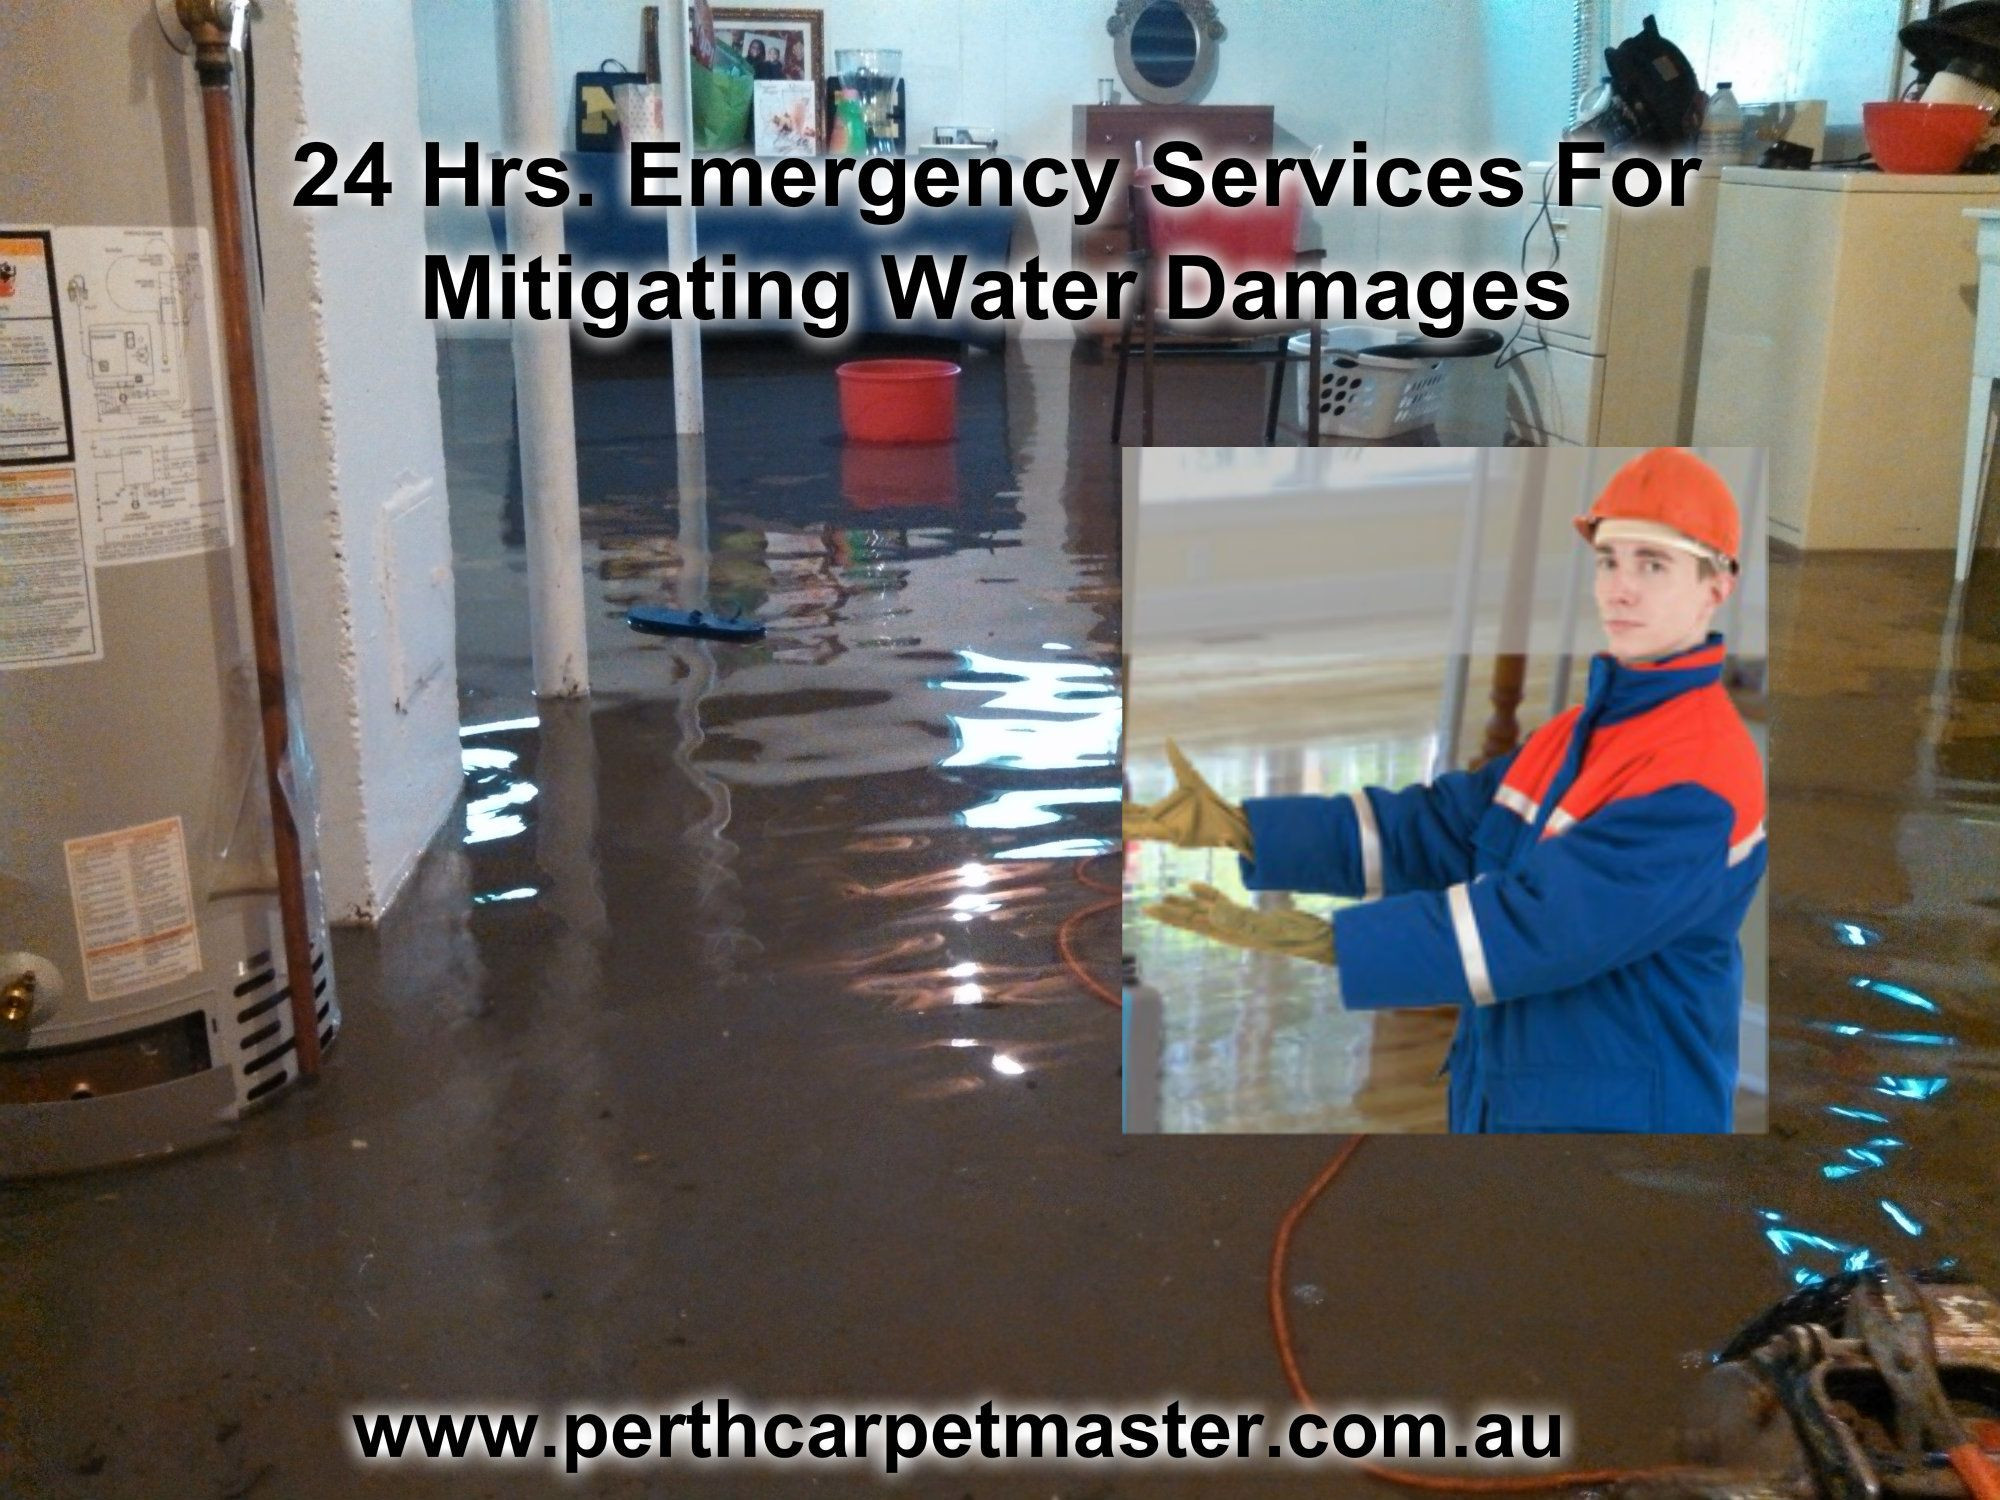 21 Famous Hardwood Floor Cleaning Companies 2021 free download hardwood floor cleaning companies of water damage ruin carpets if it is left untreated after flood or with regard to it can also destroy the flooring underneath whenever you are facing wet c